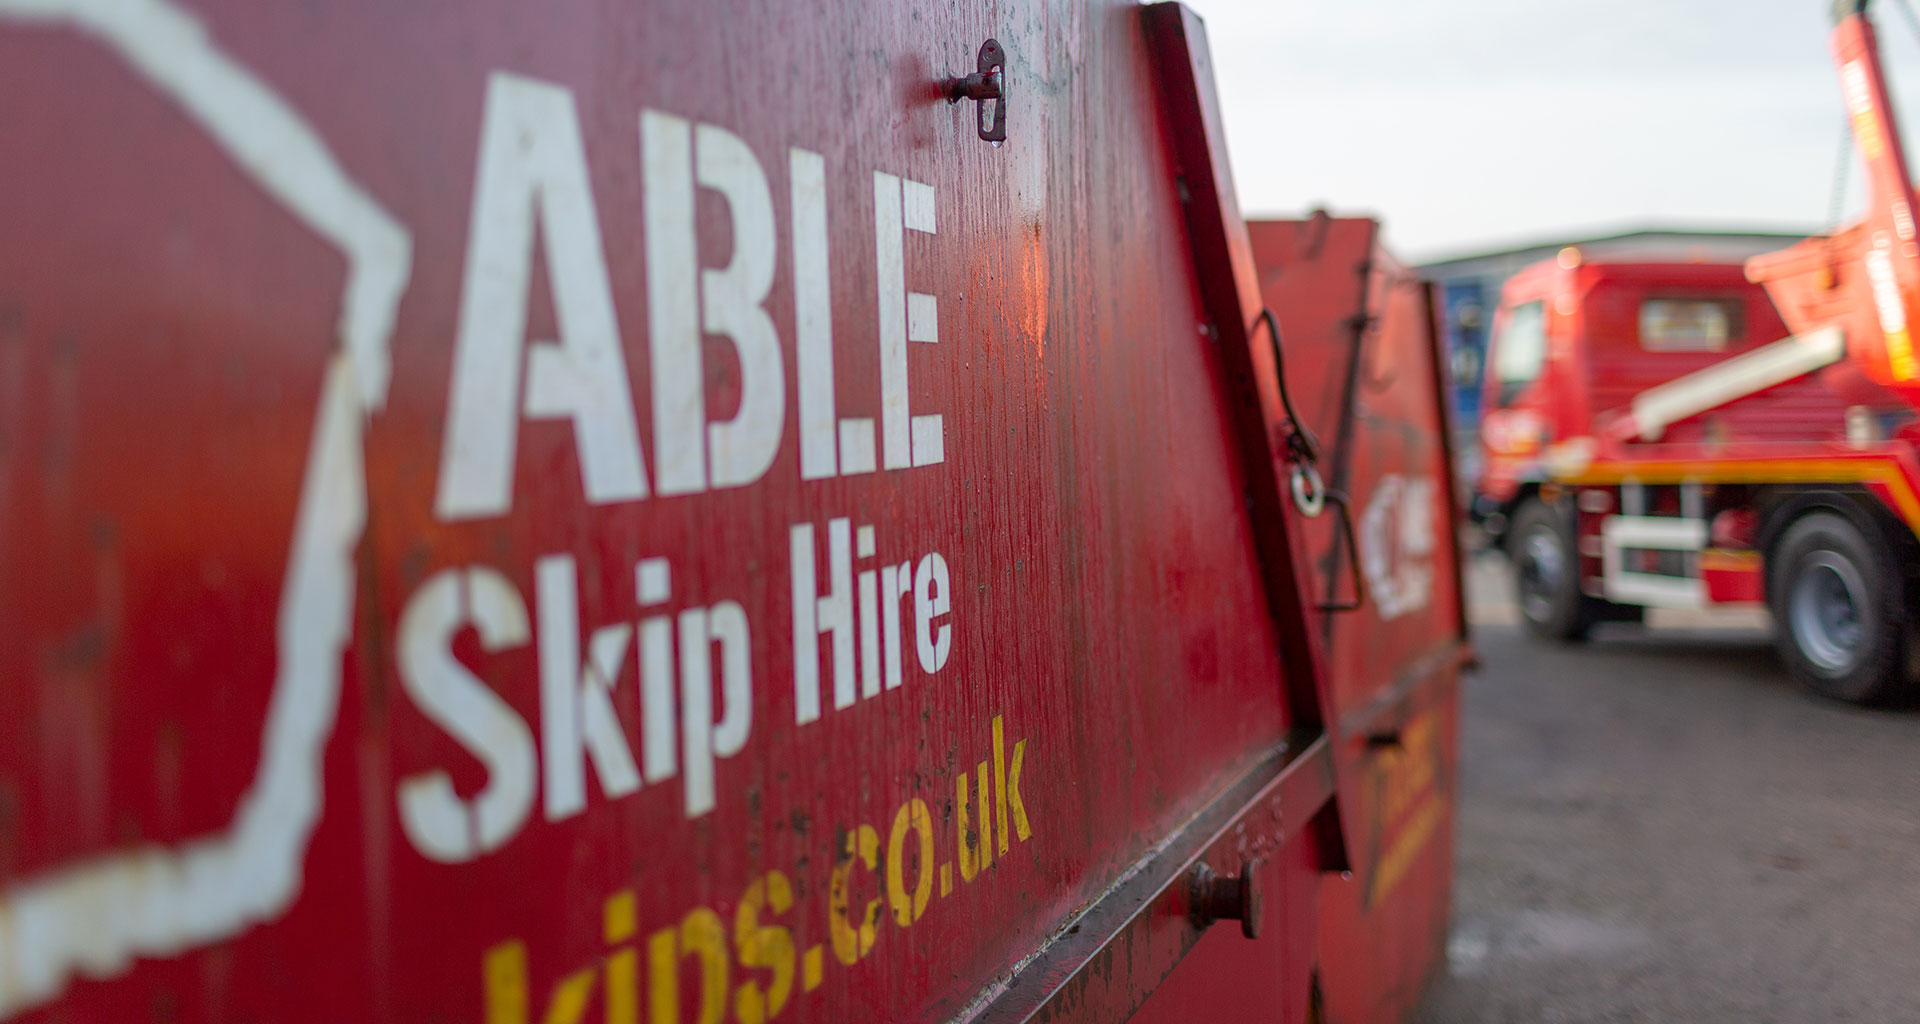 Able Skip Hire Ltd